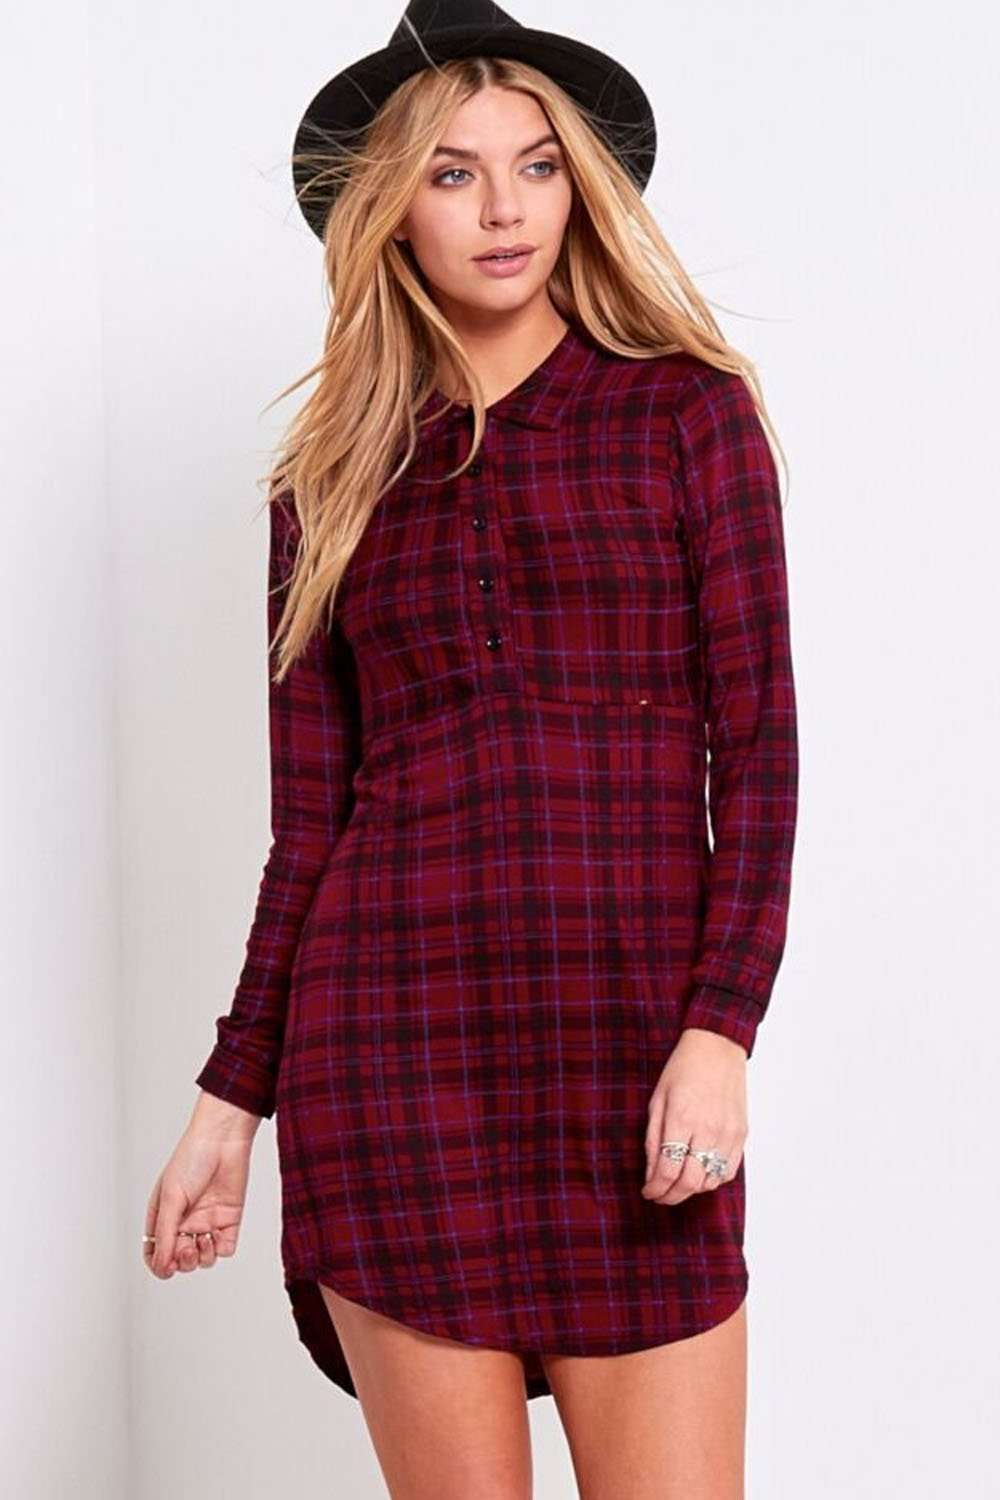 Iris Long Sleeve Red Tartan Shirt Dress - bejealous-com